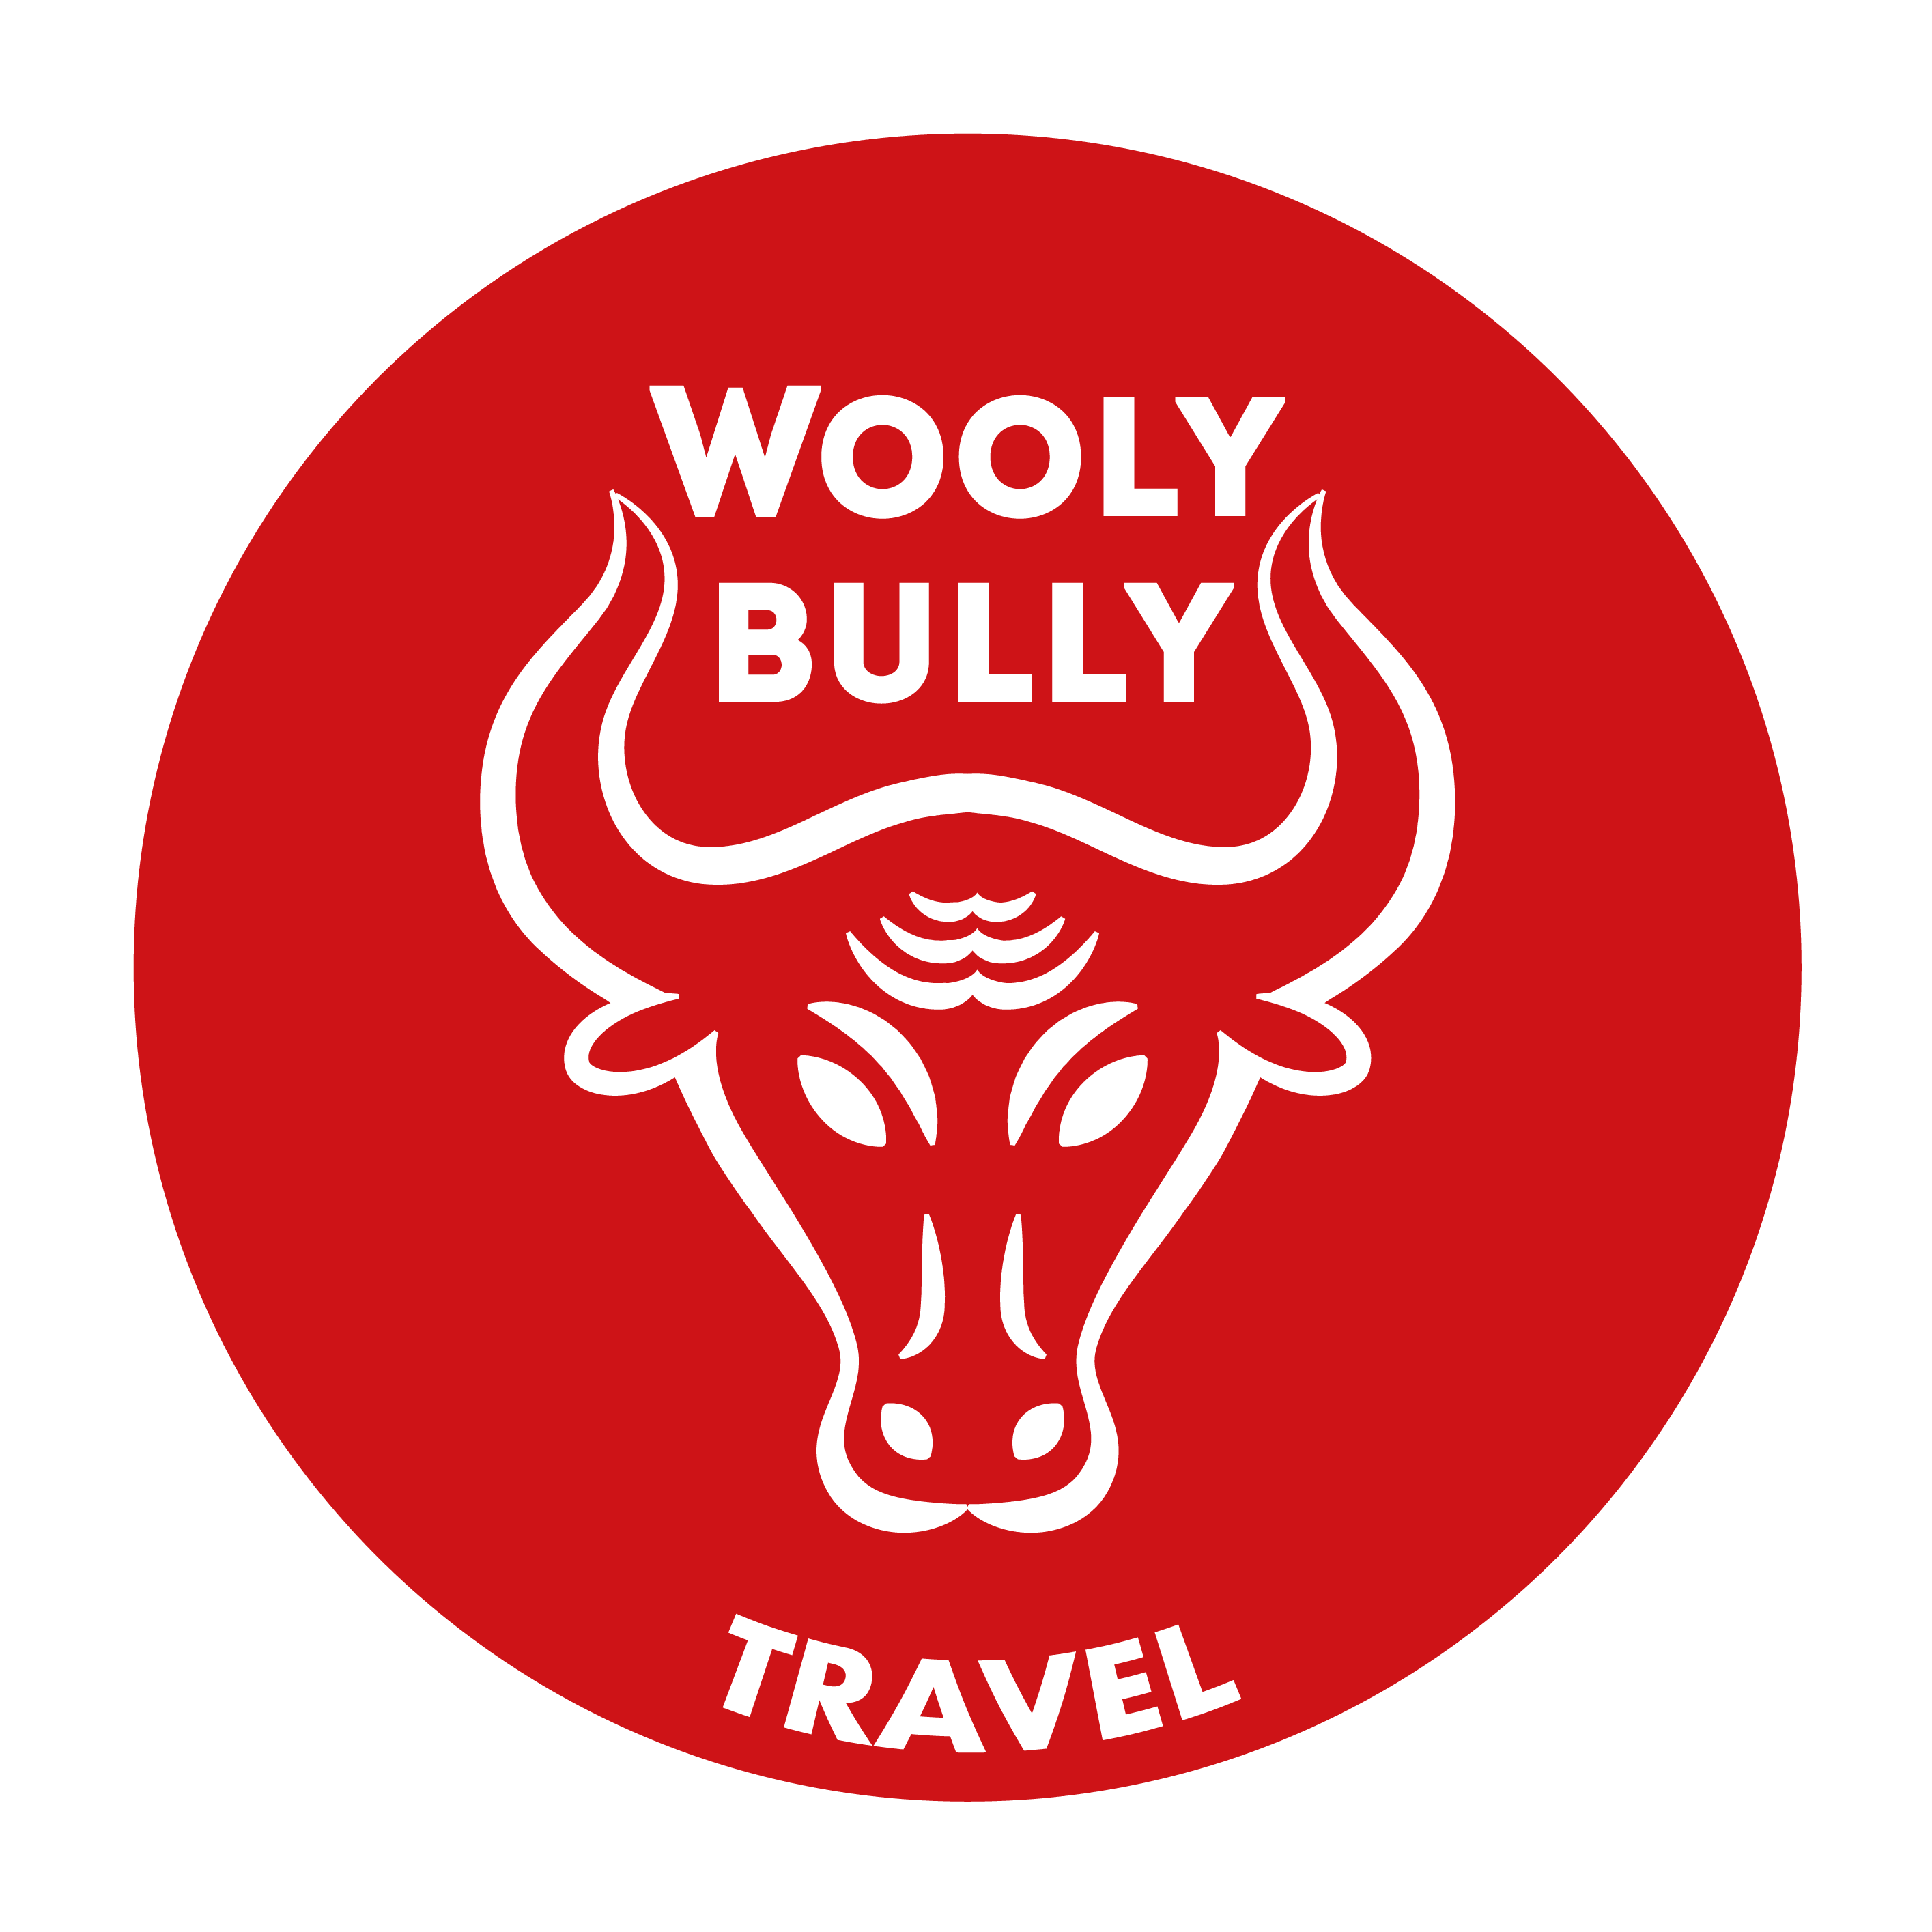 WoolyBully.travel